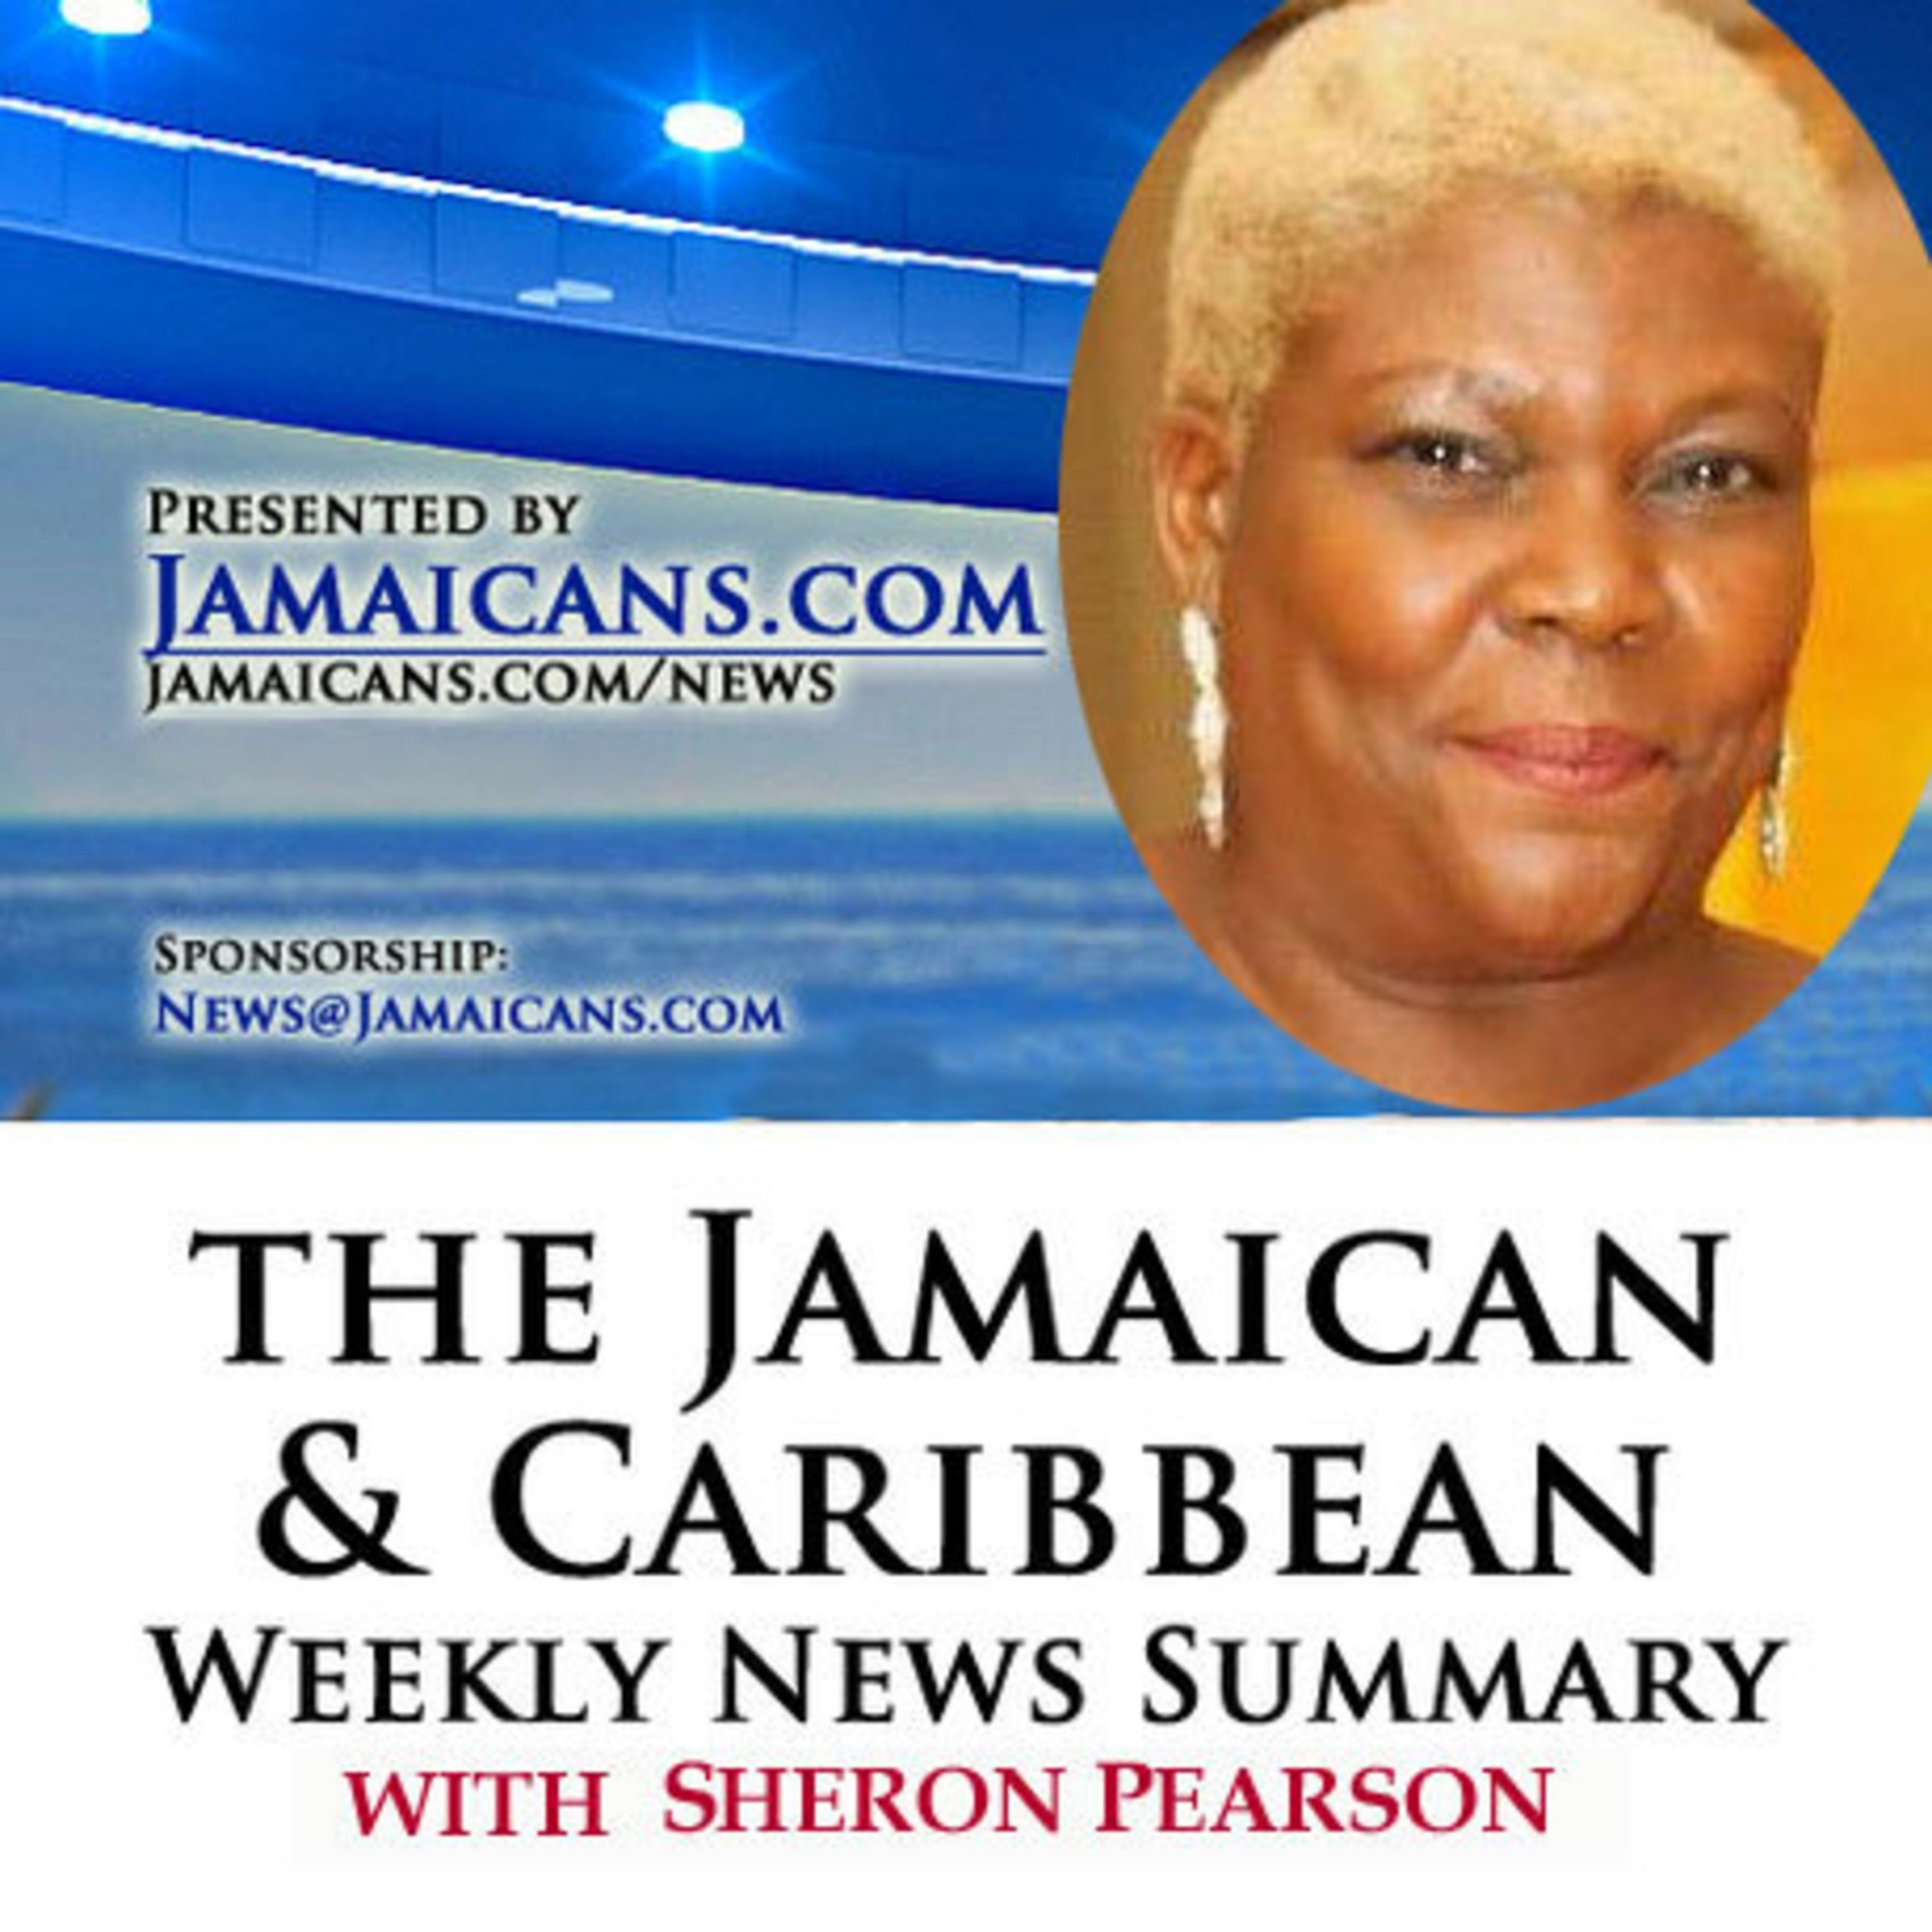 Listen to the Podcast of The Jamaica & Caribbean Weekly News Summary for the week ending June 14 2019